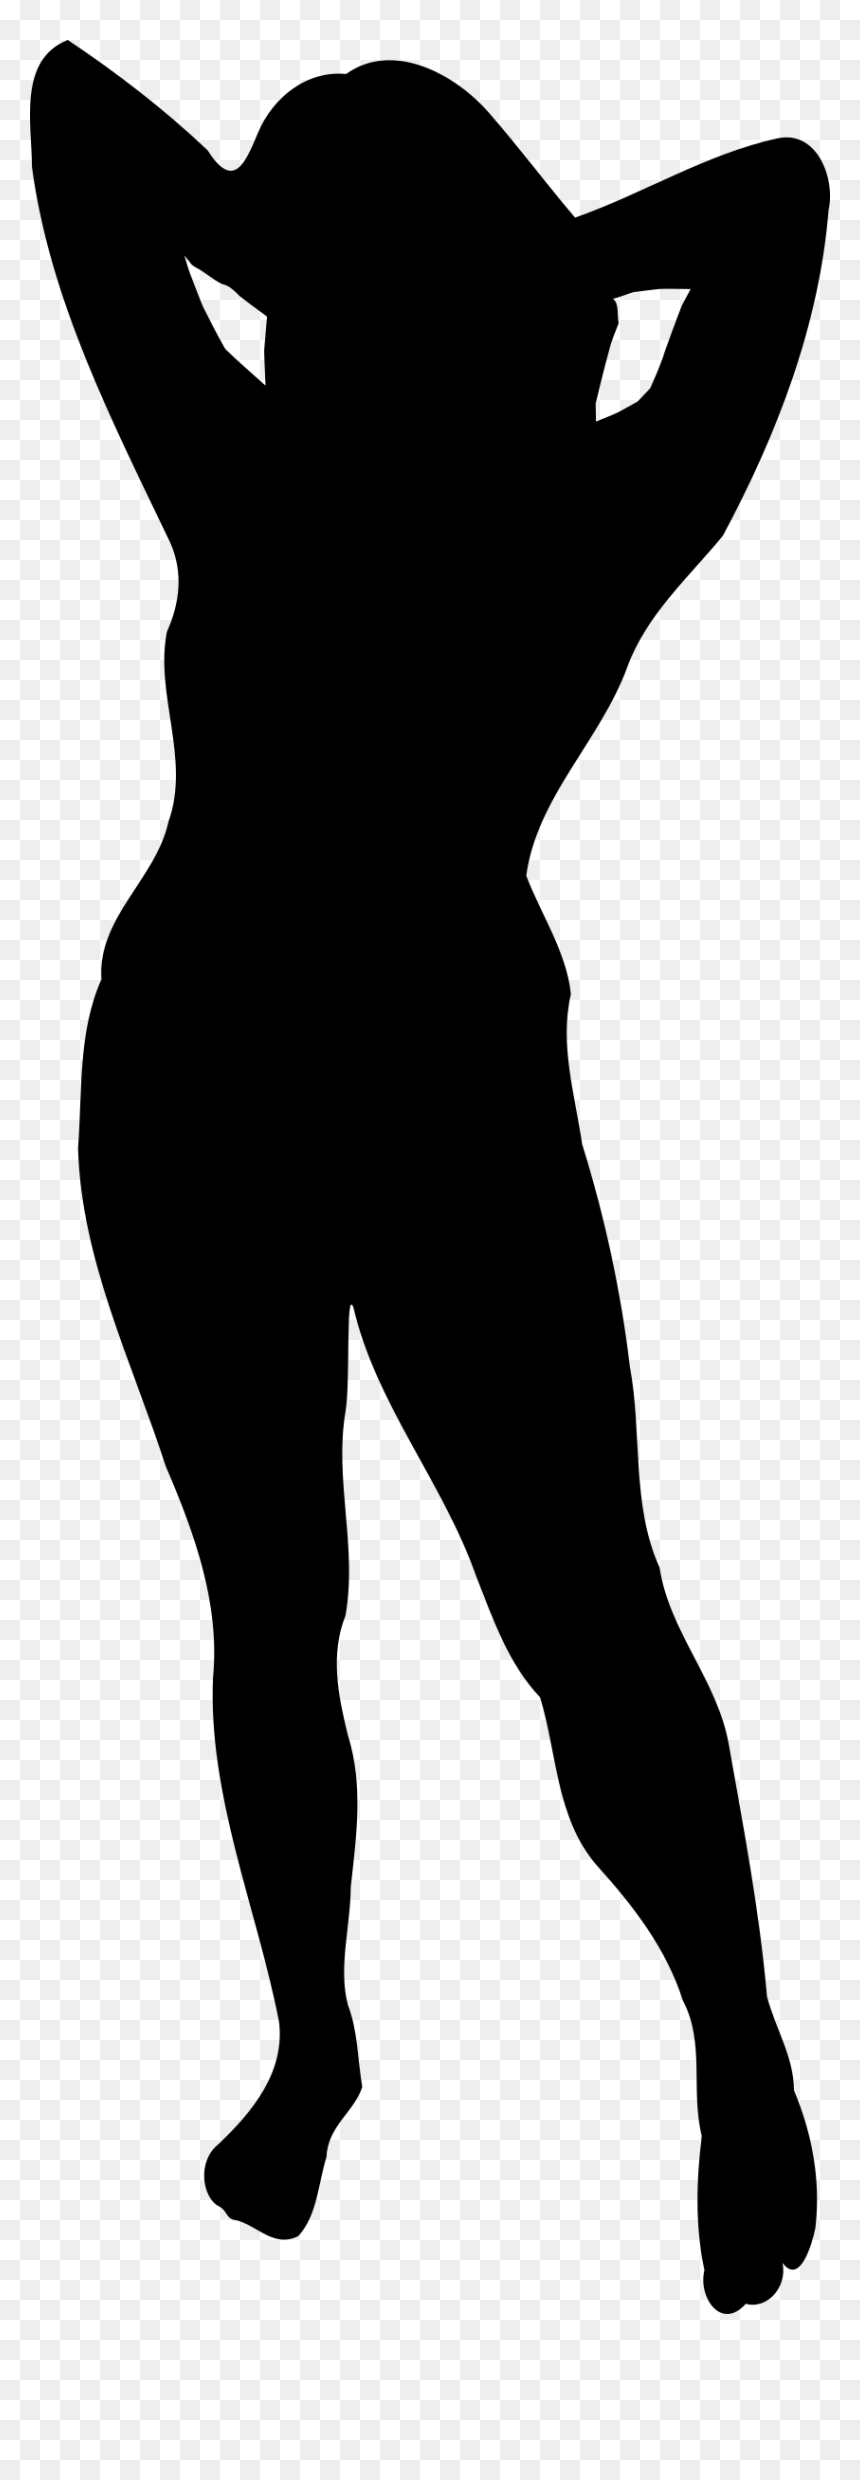 African American Woman Silhouette | Woman face silhouette, Silhouette face,  Silhouette clip art